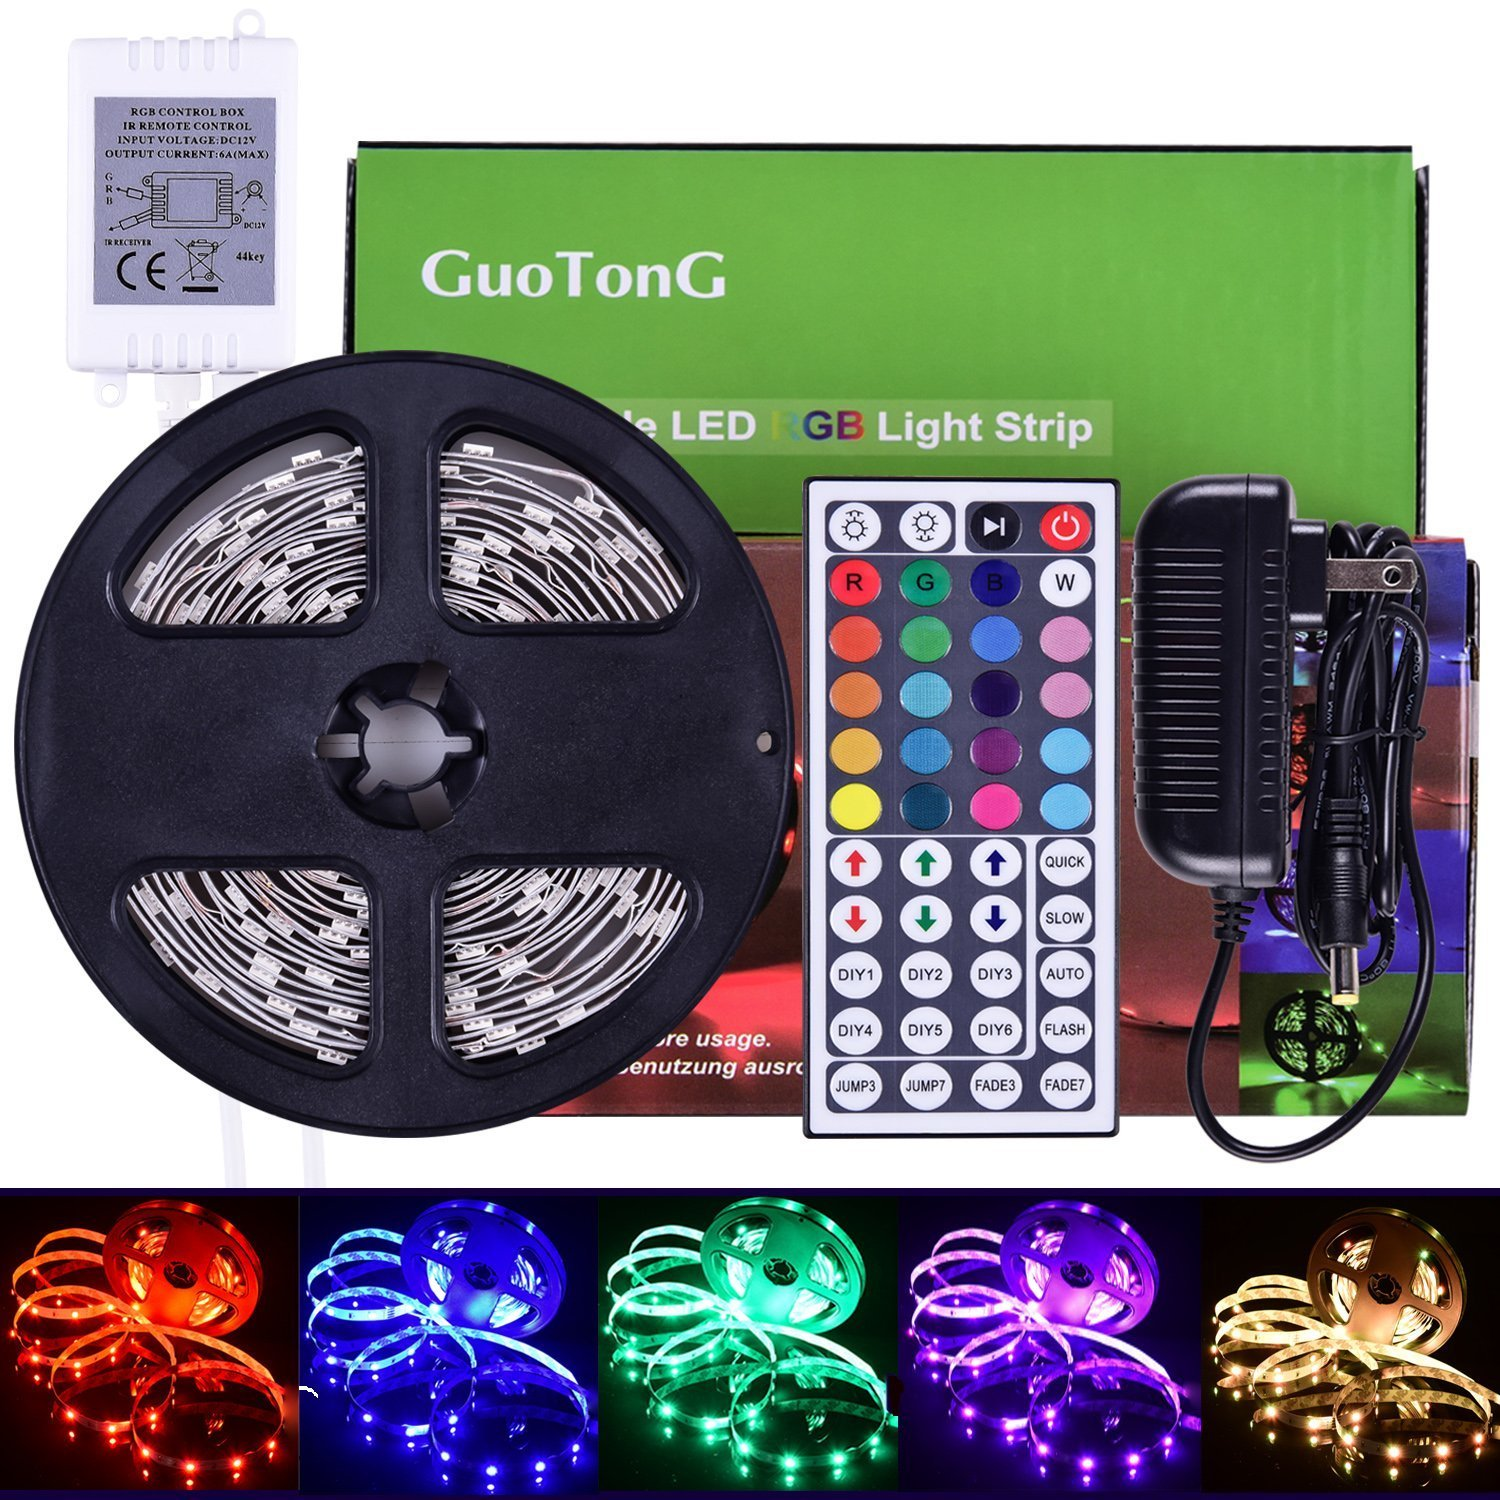 GuoTonG 16.4ft/5m LED Strip Light Kit, 150 Units RGB 5050 Leds, Color Changing, Non-Waterproof 12V DC Light Strips,44 Key IR Remote Controller with Power Supply For Christmas Holiday Home Kitchen Car